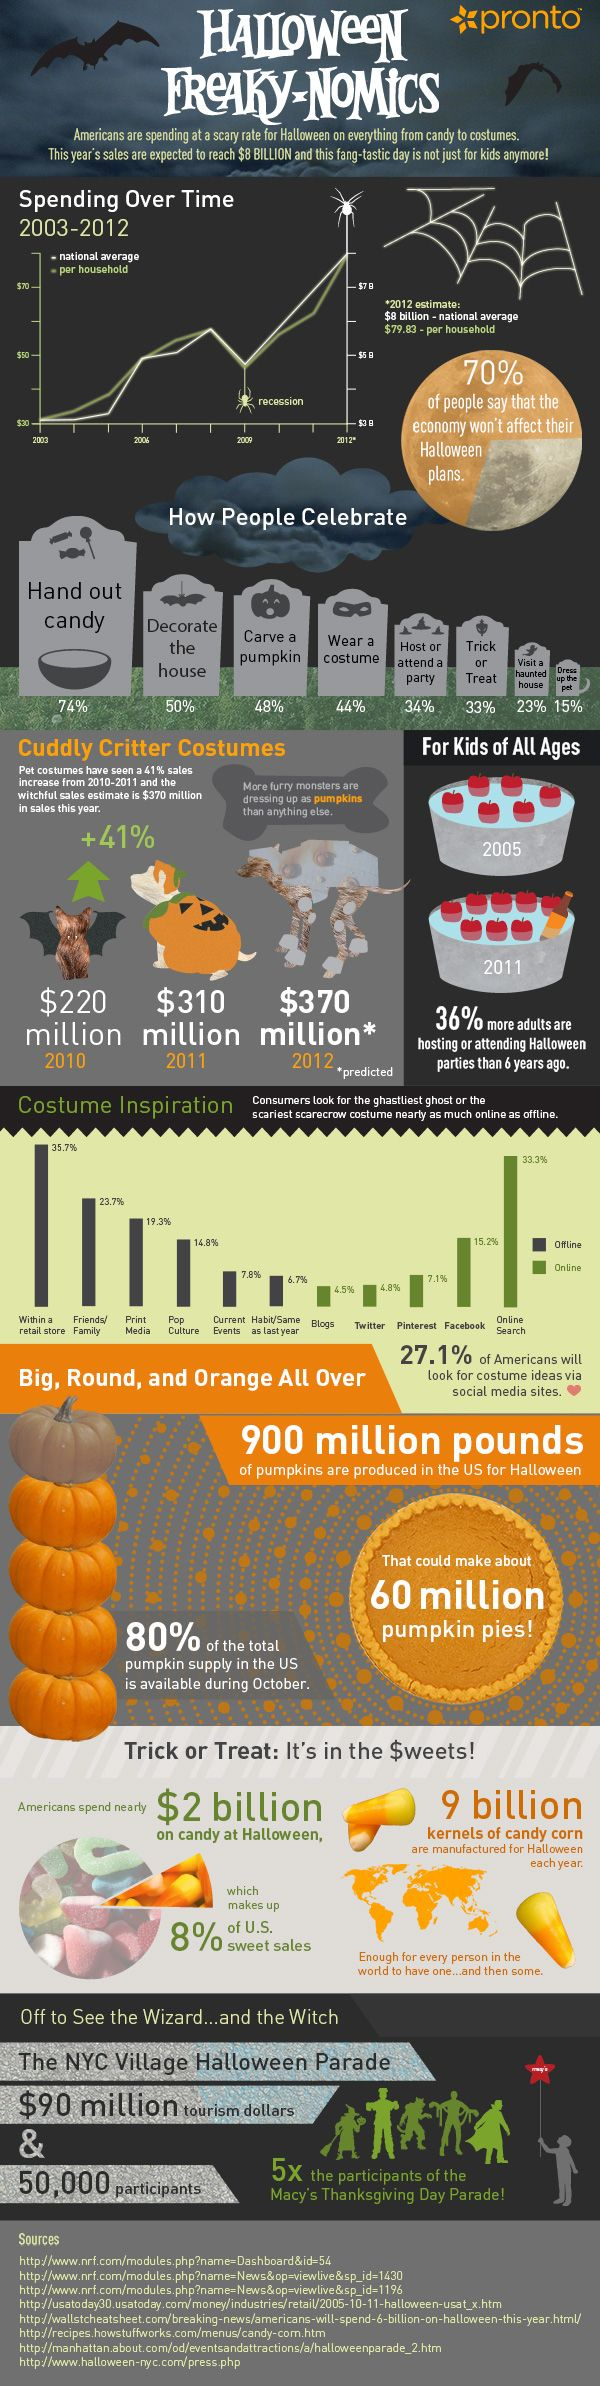 Halloween Freaky nomics of the USA 68 best